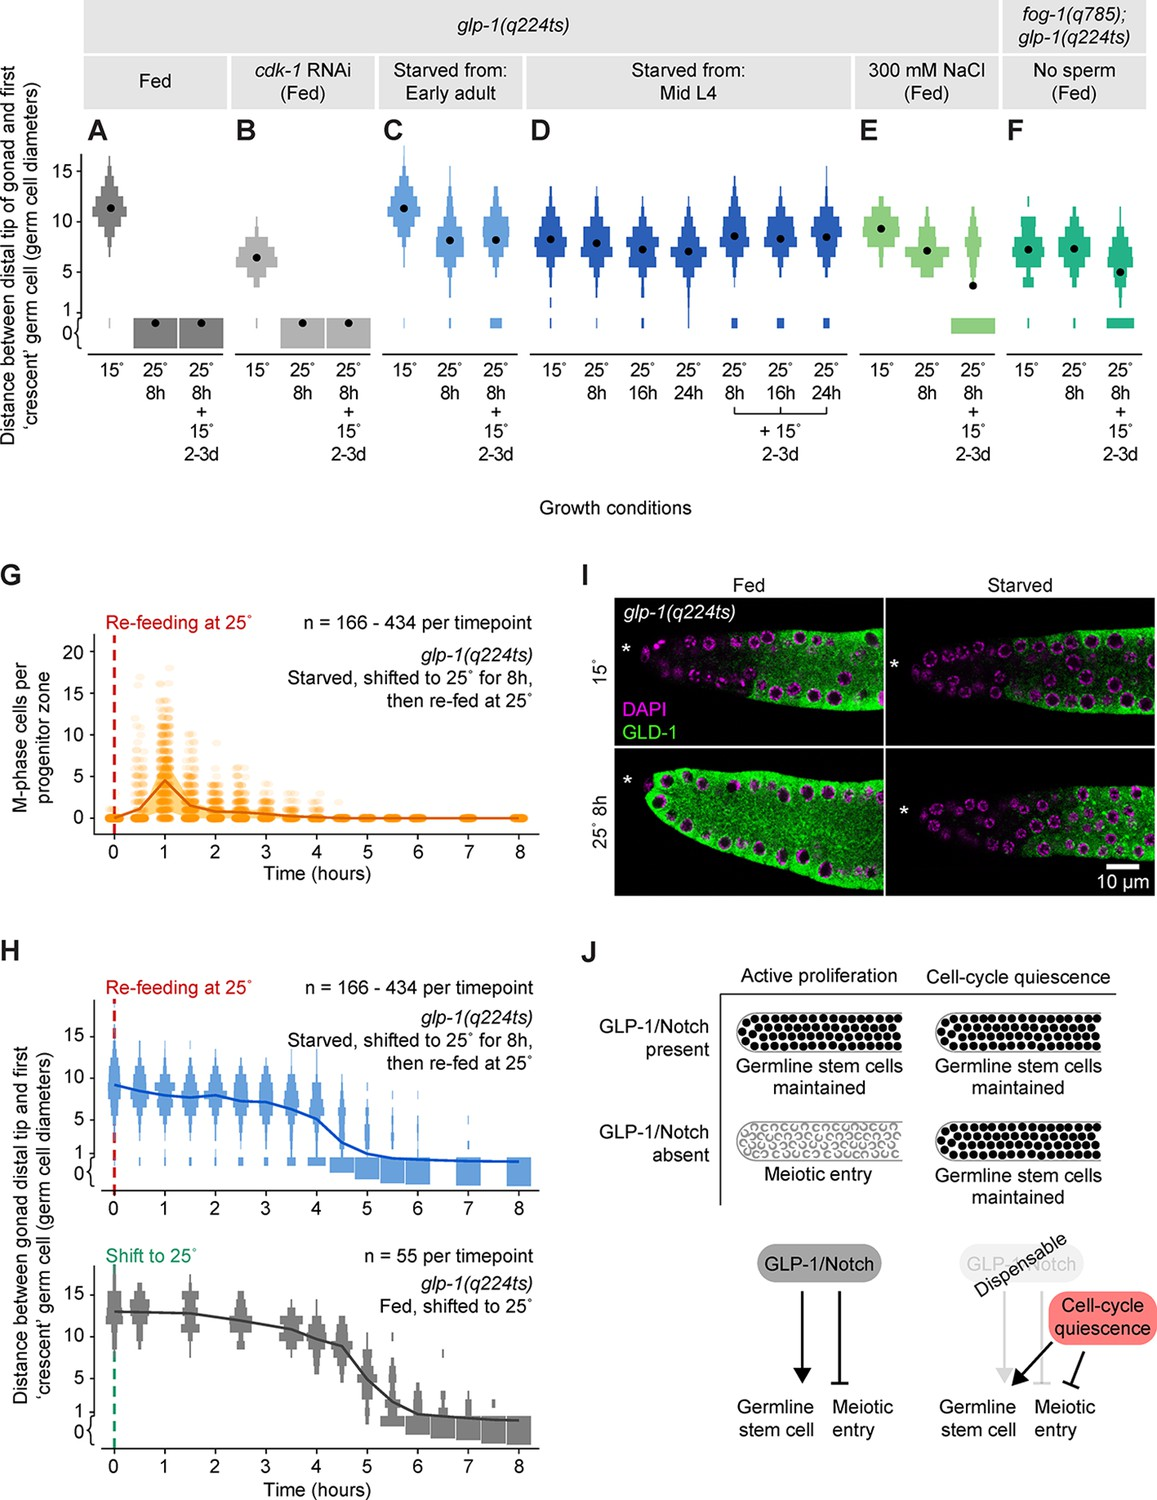 Cell Cycle Quiescence Maintains Caenorhabditis Elegans Germline Stem No Disassemble Johnny 5is Alive Induced By Three Different Conditions Cells Independent Of Glp 1 Notch